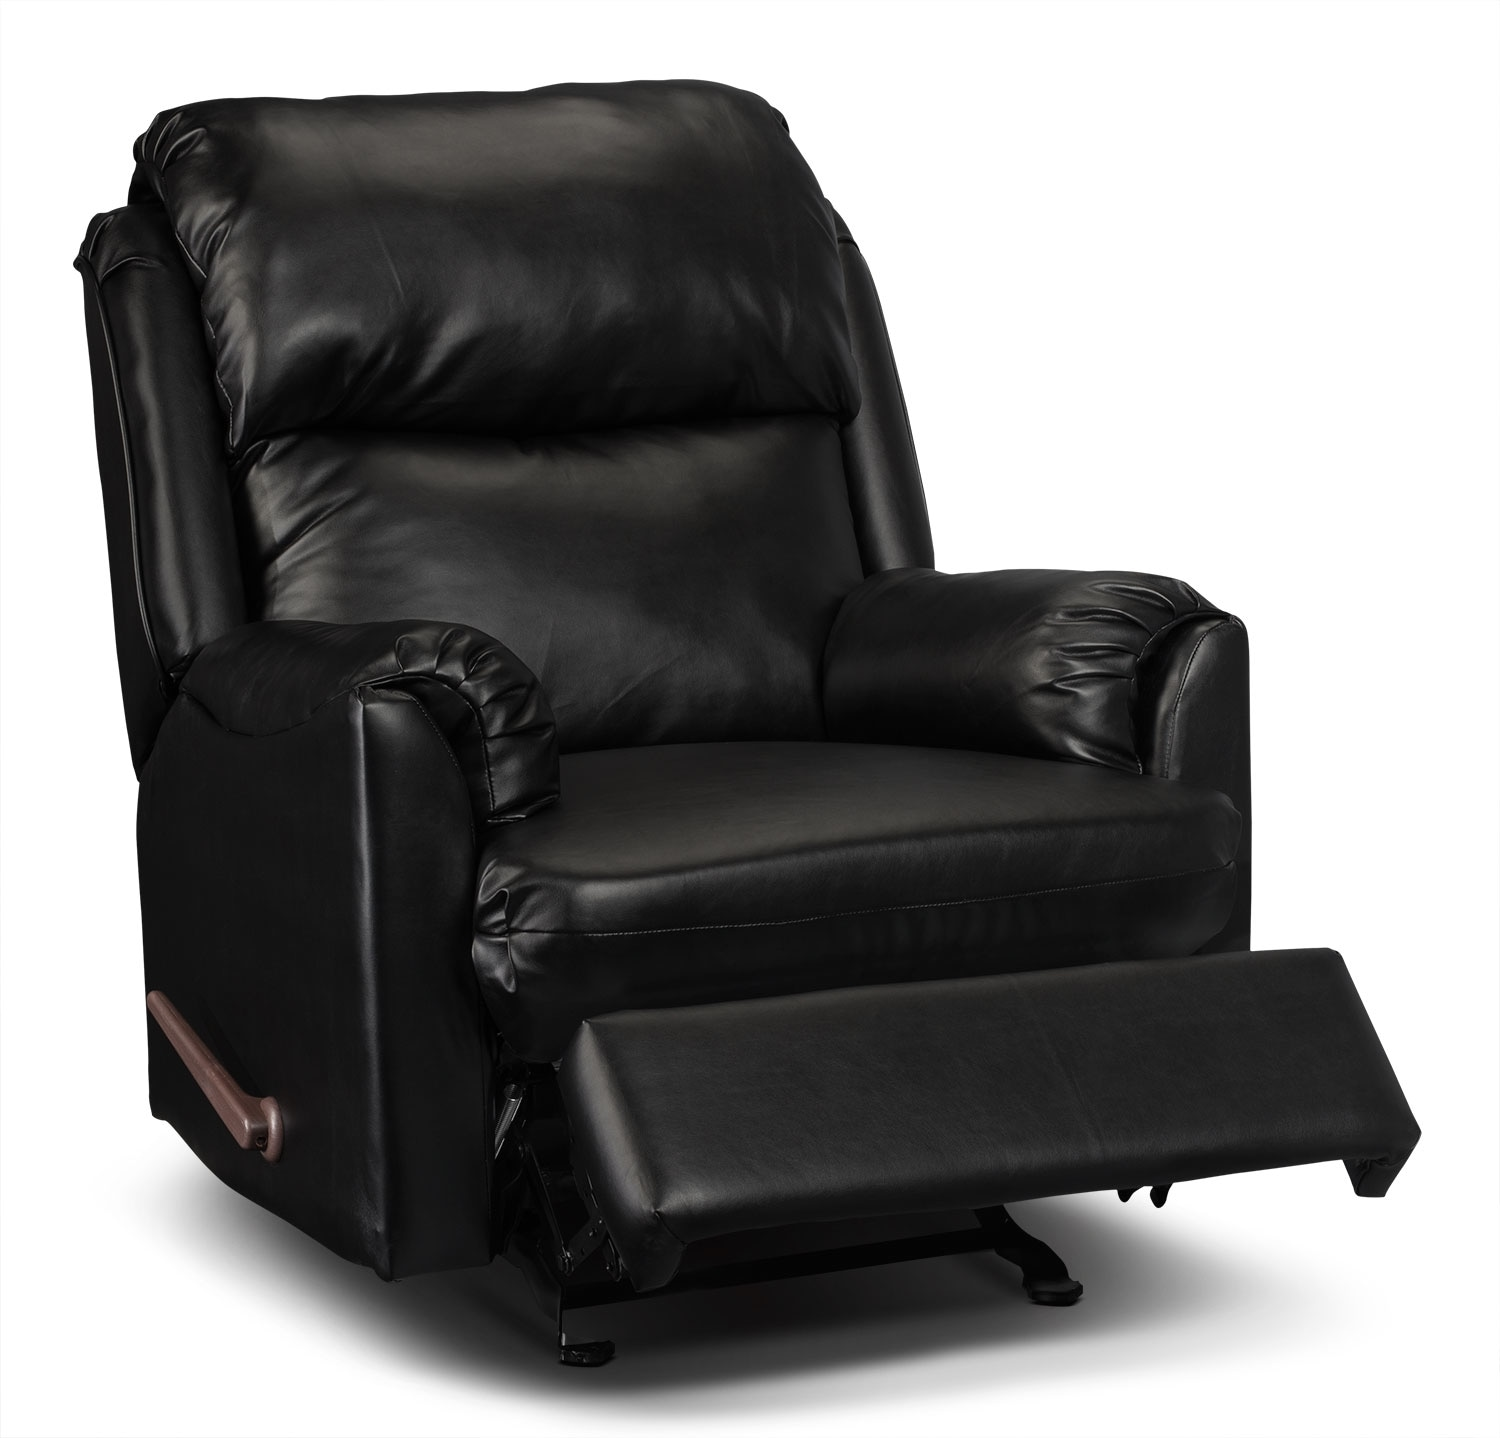 Drogba faux leather recliner black the brick for Chair chair chair